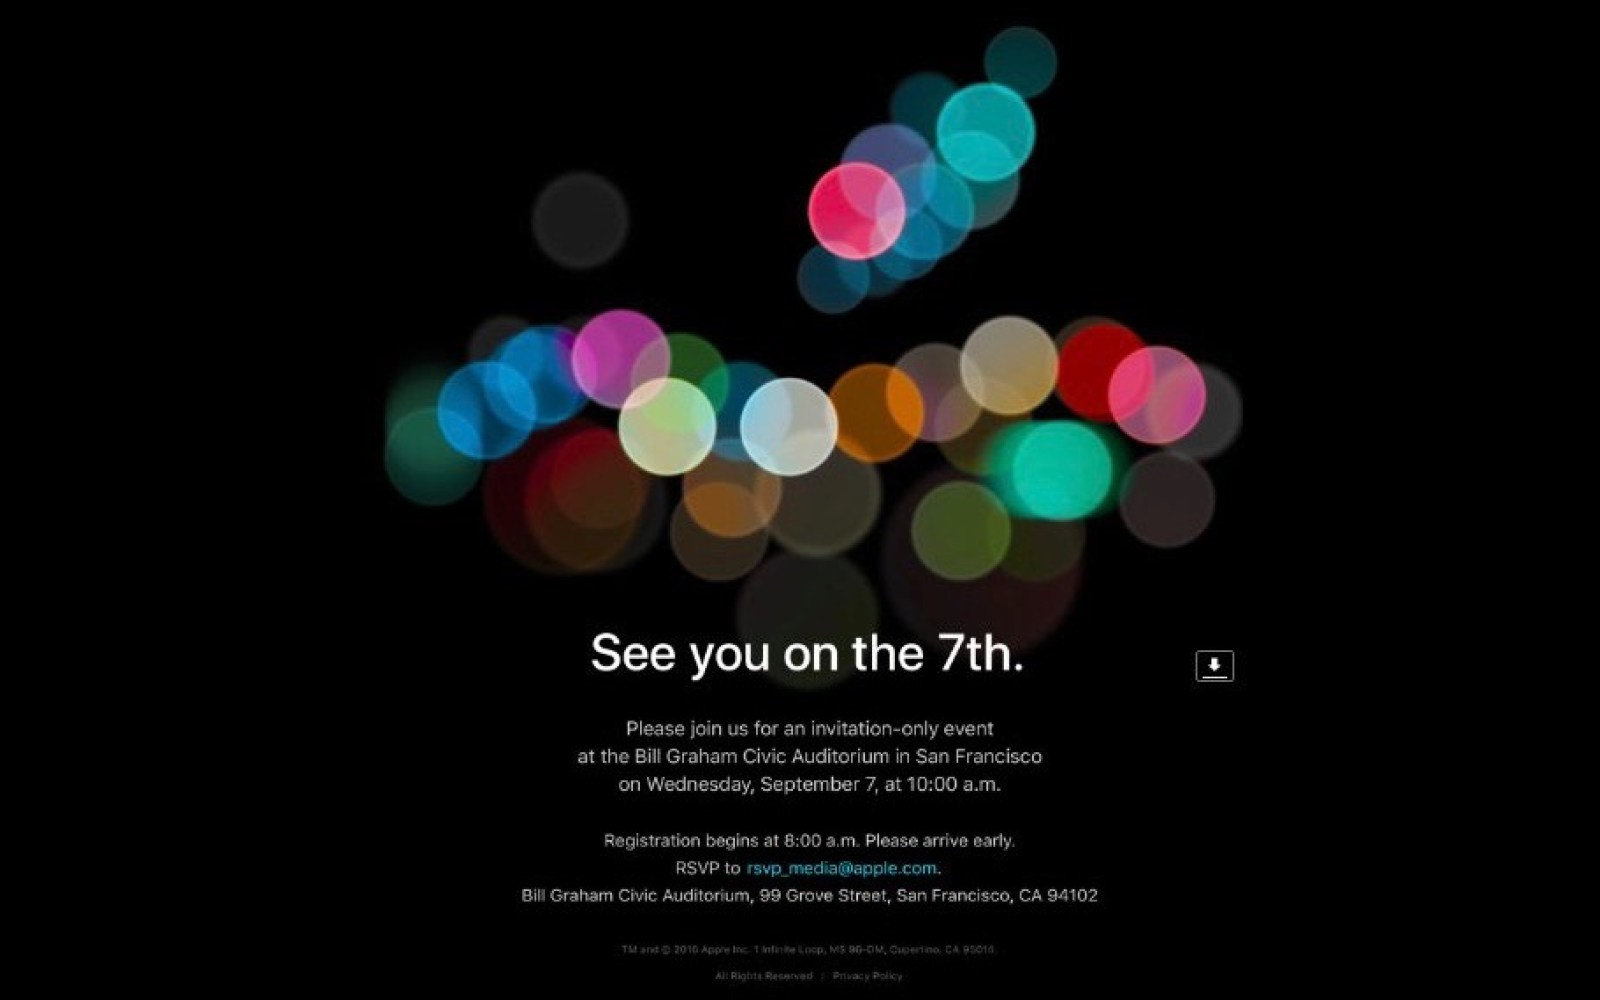 Apple announces 'iPhone 7' September 7 event, Apple Watch 2 and MacBook Pros may be unveiled